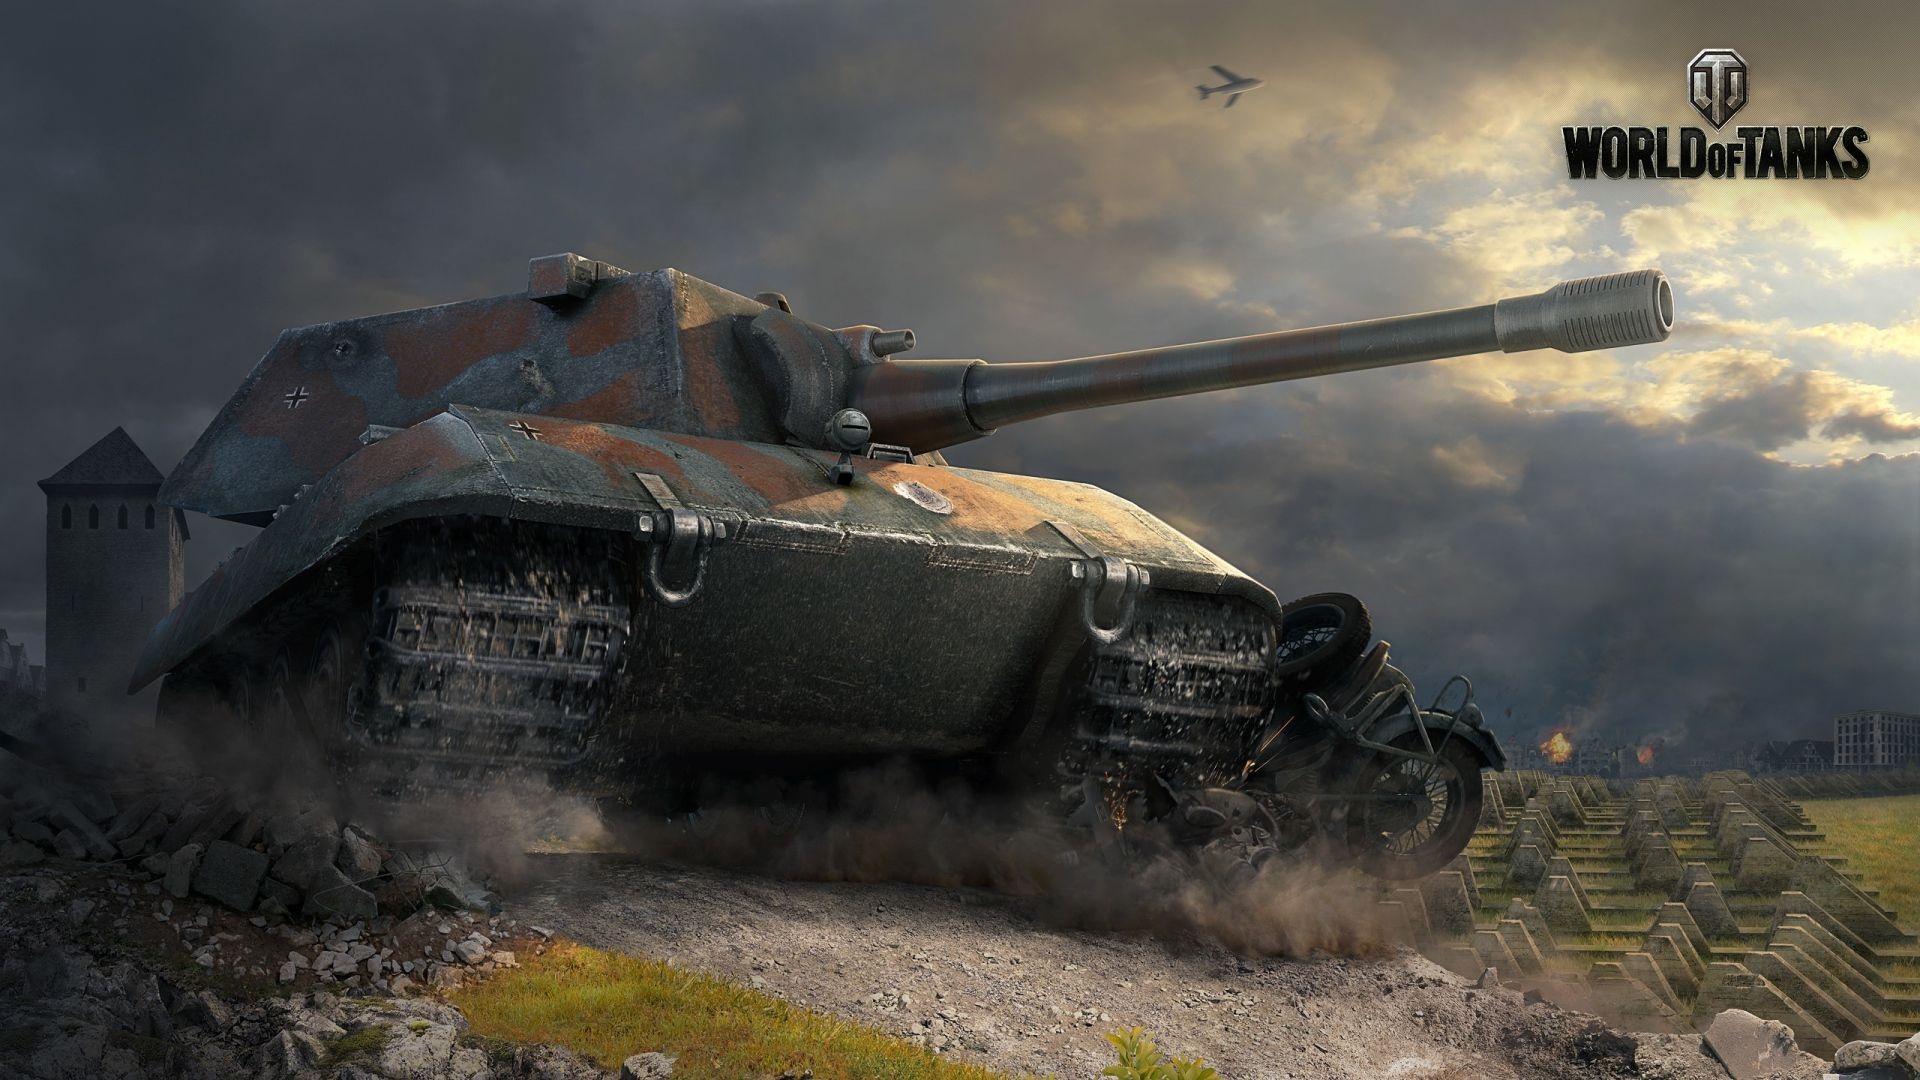 full hd 1080p world of tanks wallpapers hd, desktop backgrounds